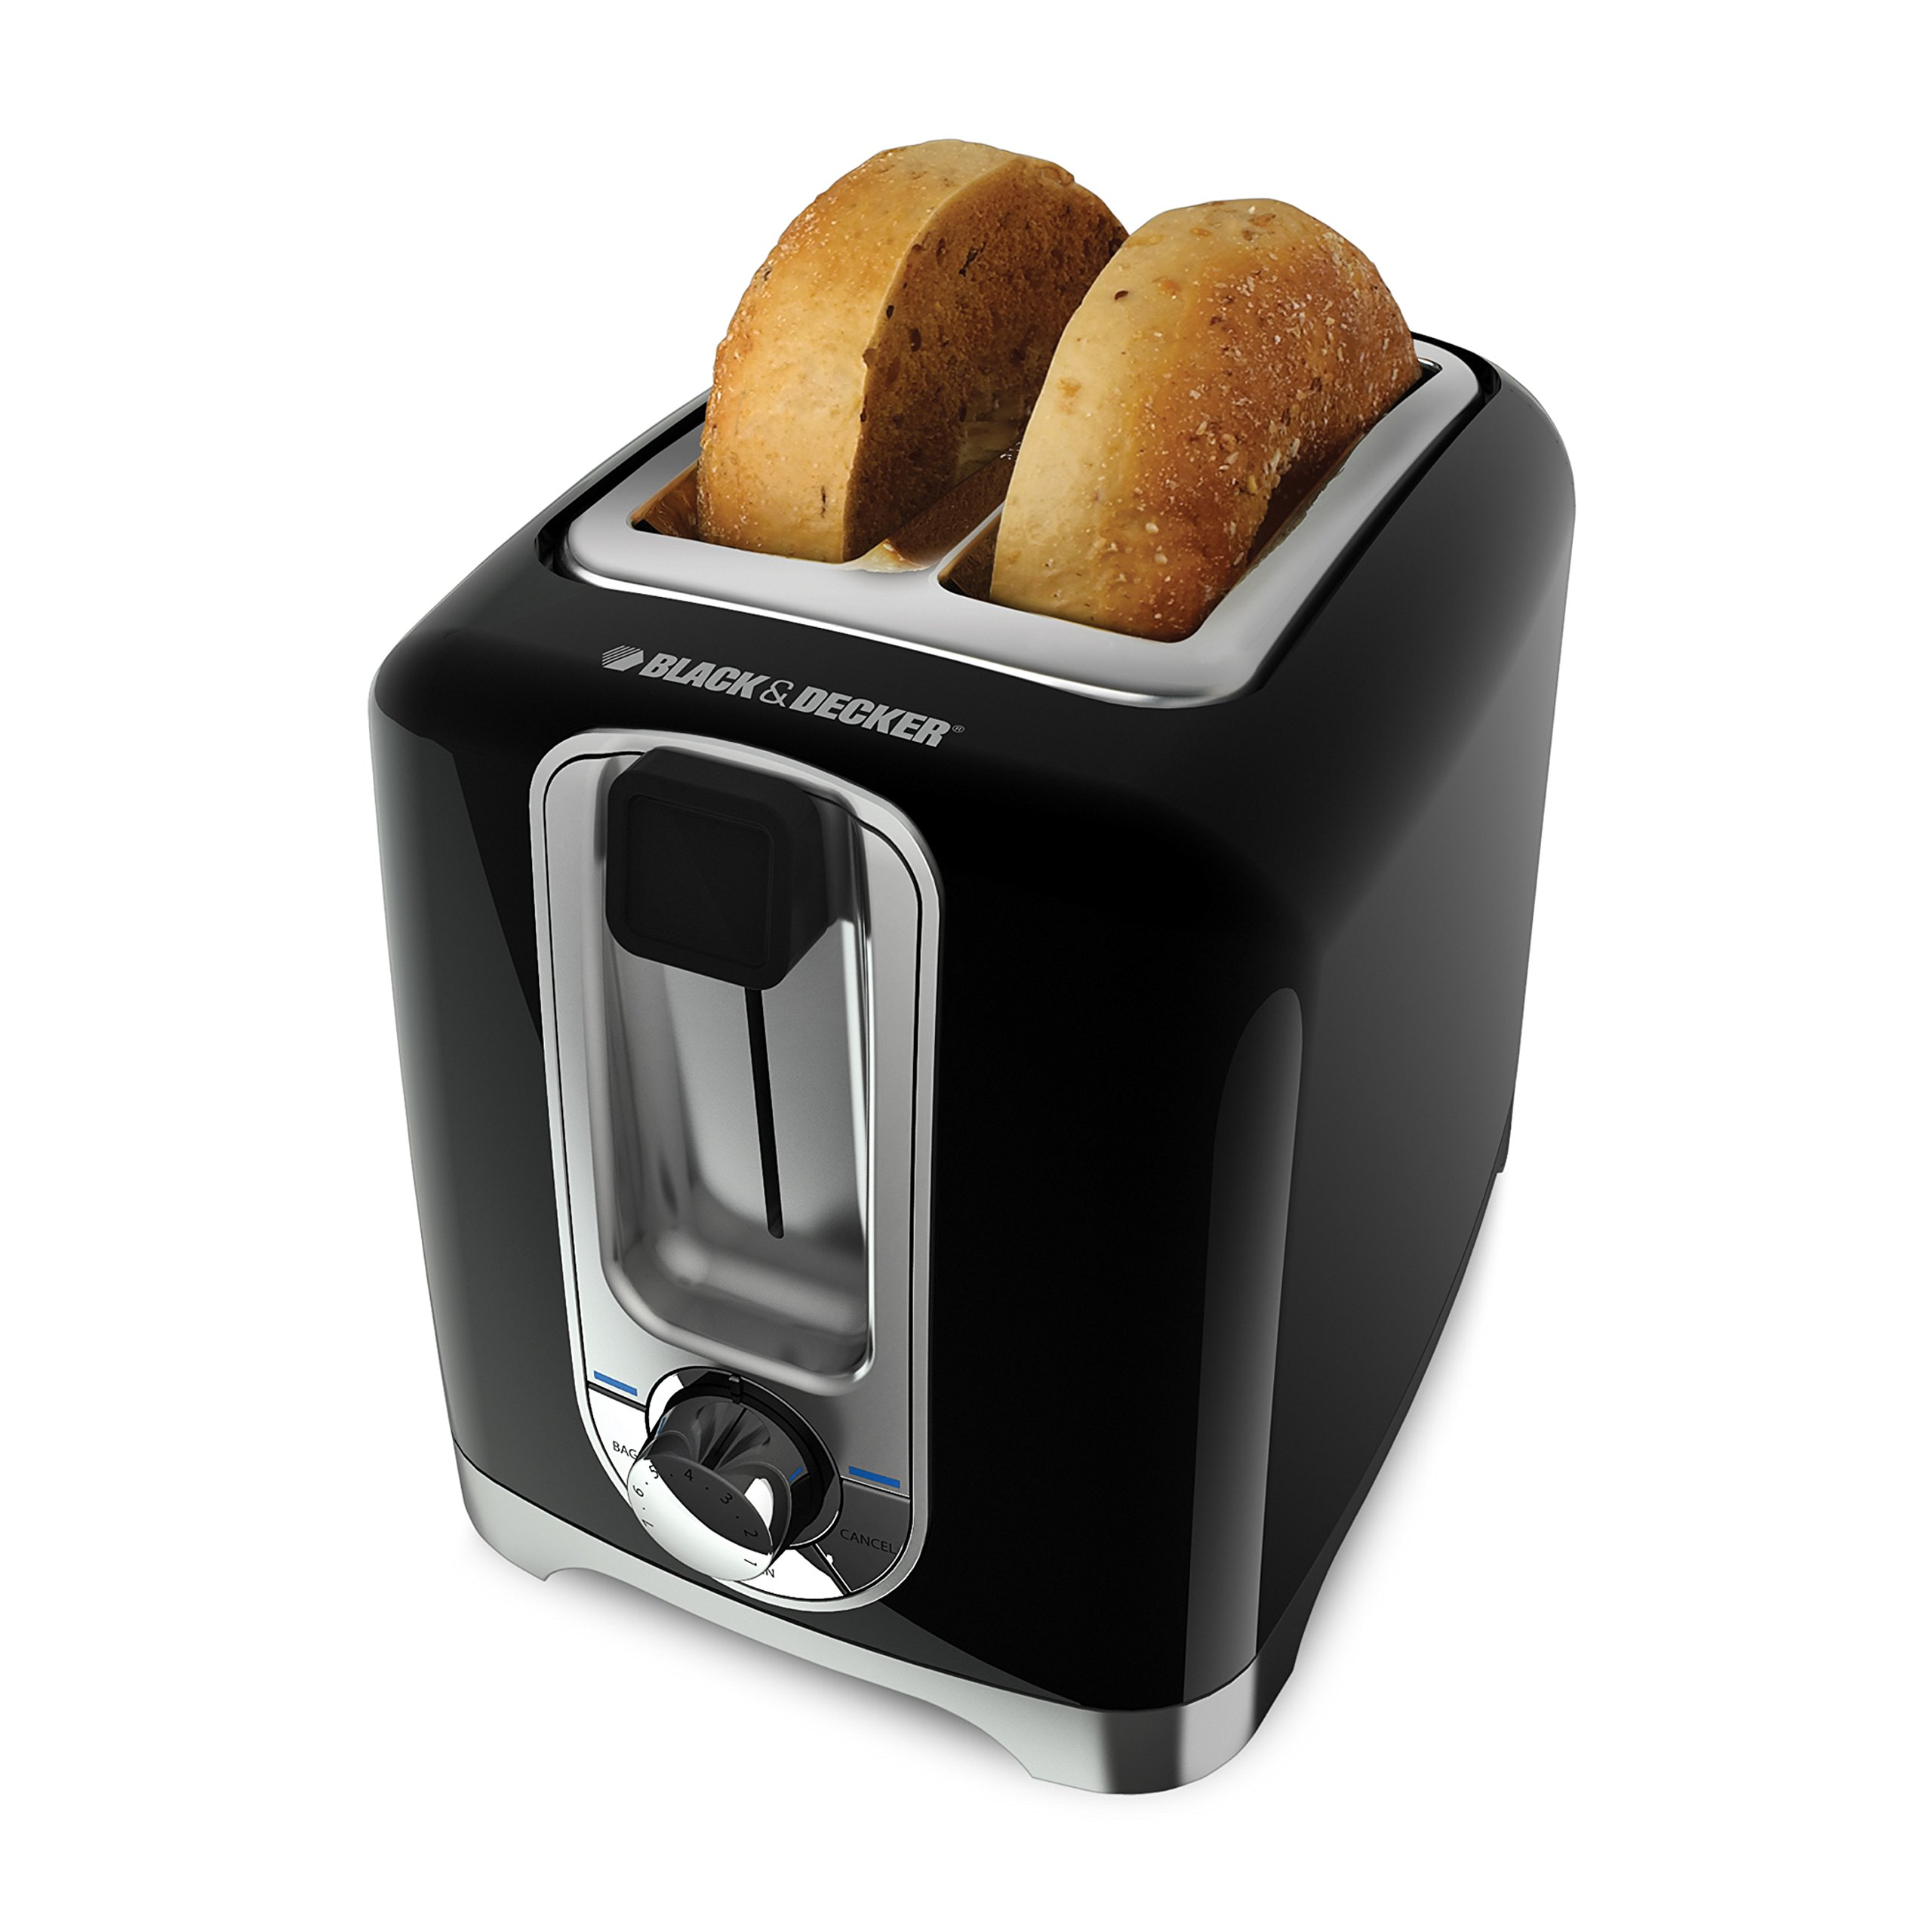 BLACK+DECKER 2-Slice Toaster, Square, Black with Chrome Accents, TR1256B by BLACK+DECKER